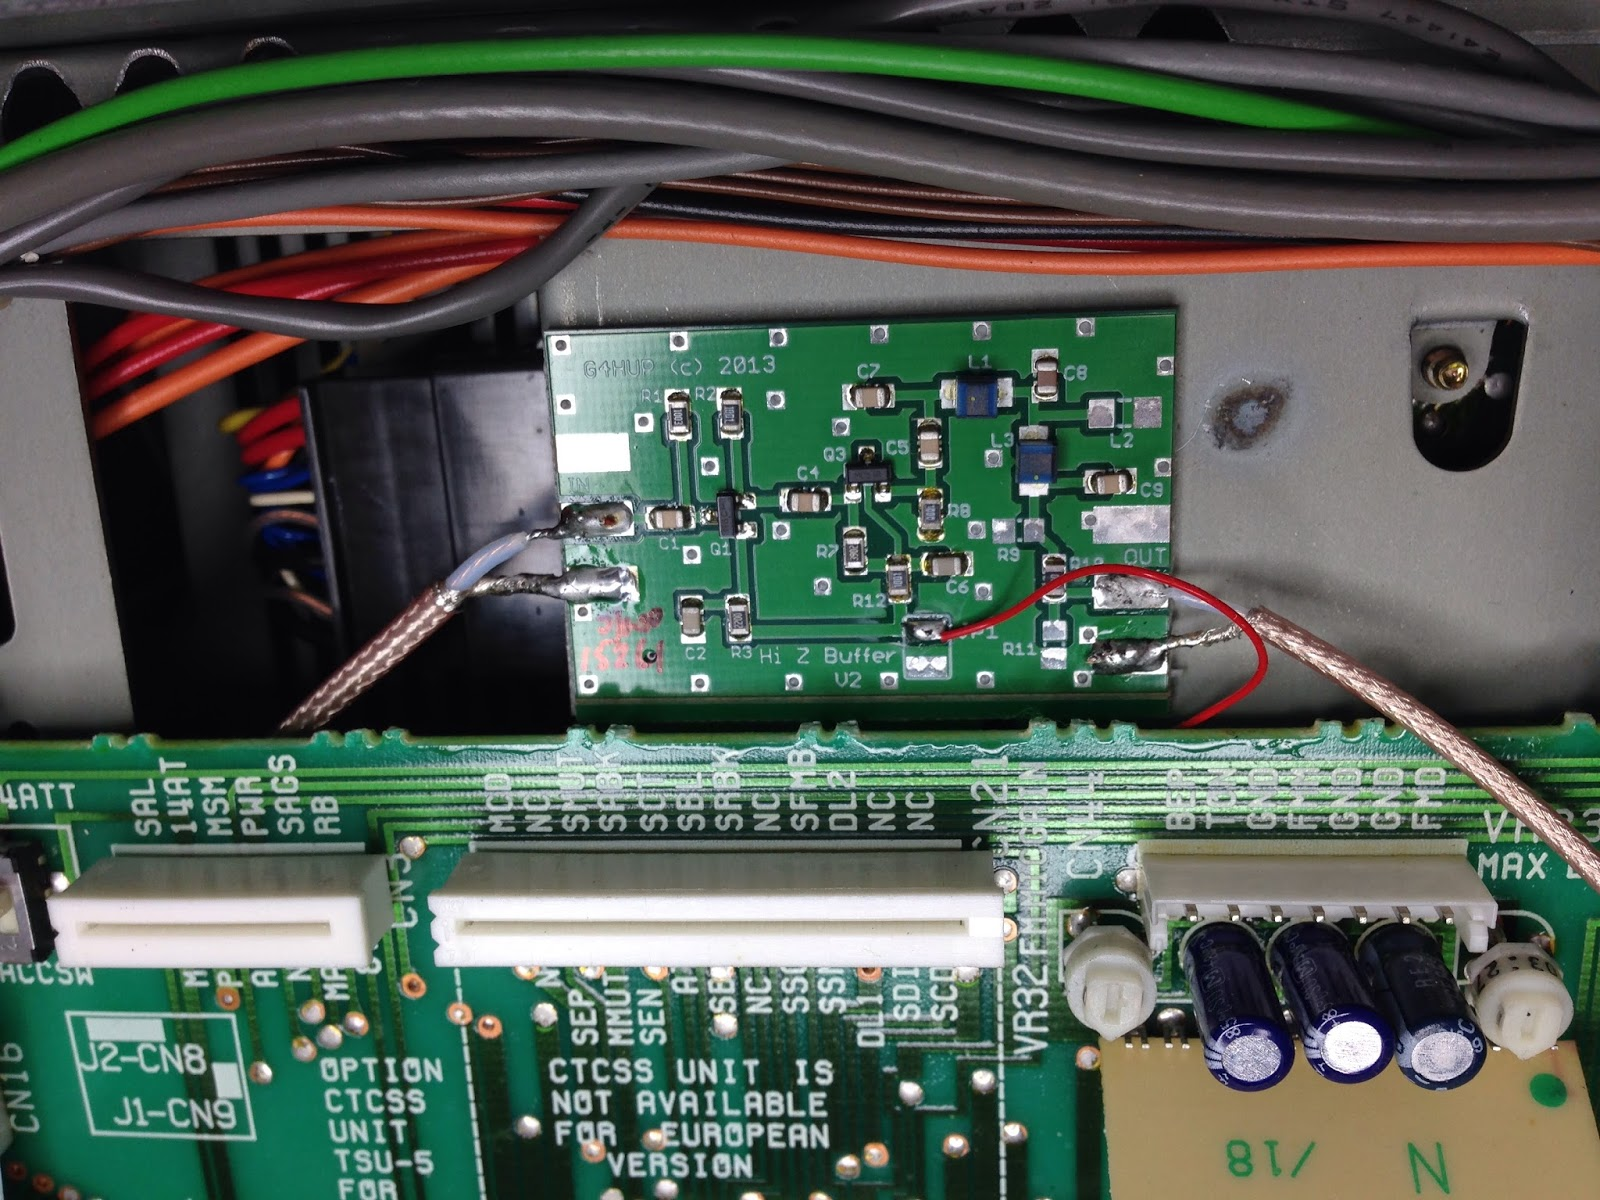 SV1BGM: Kenwood TS-790 IF output for SDR panadapter